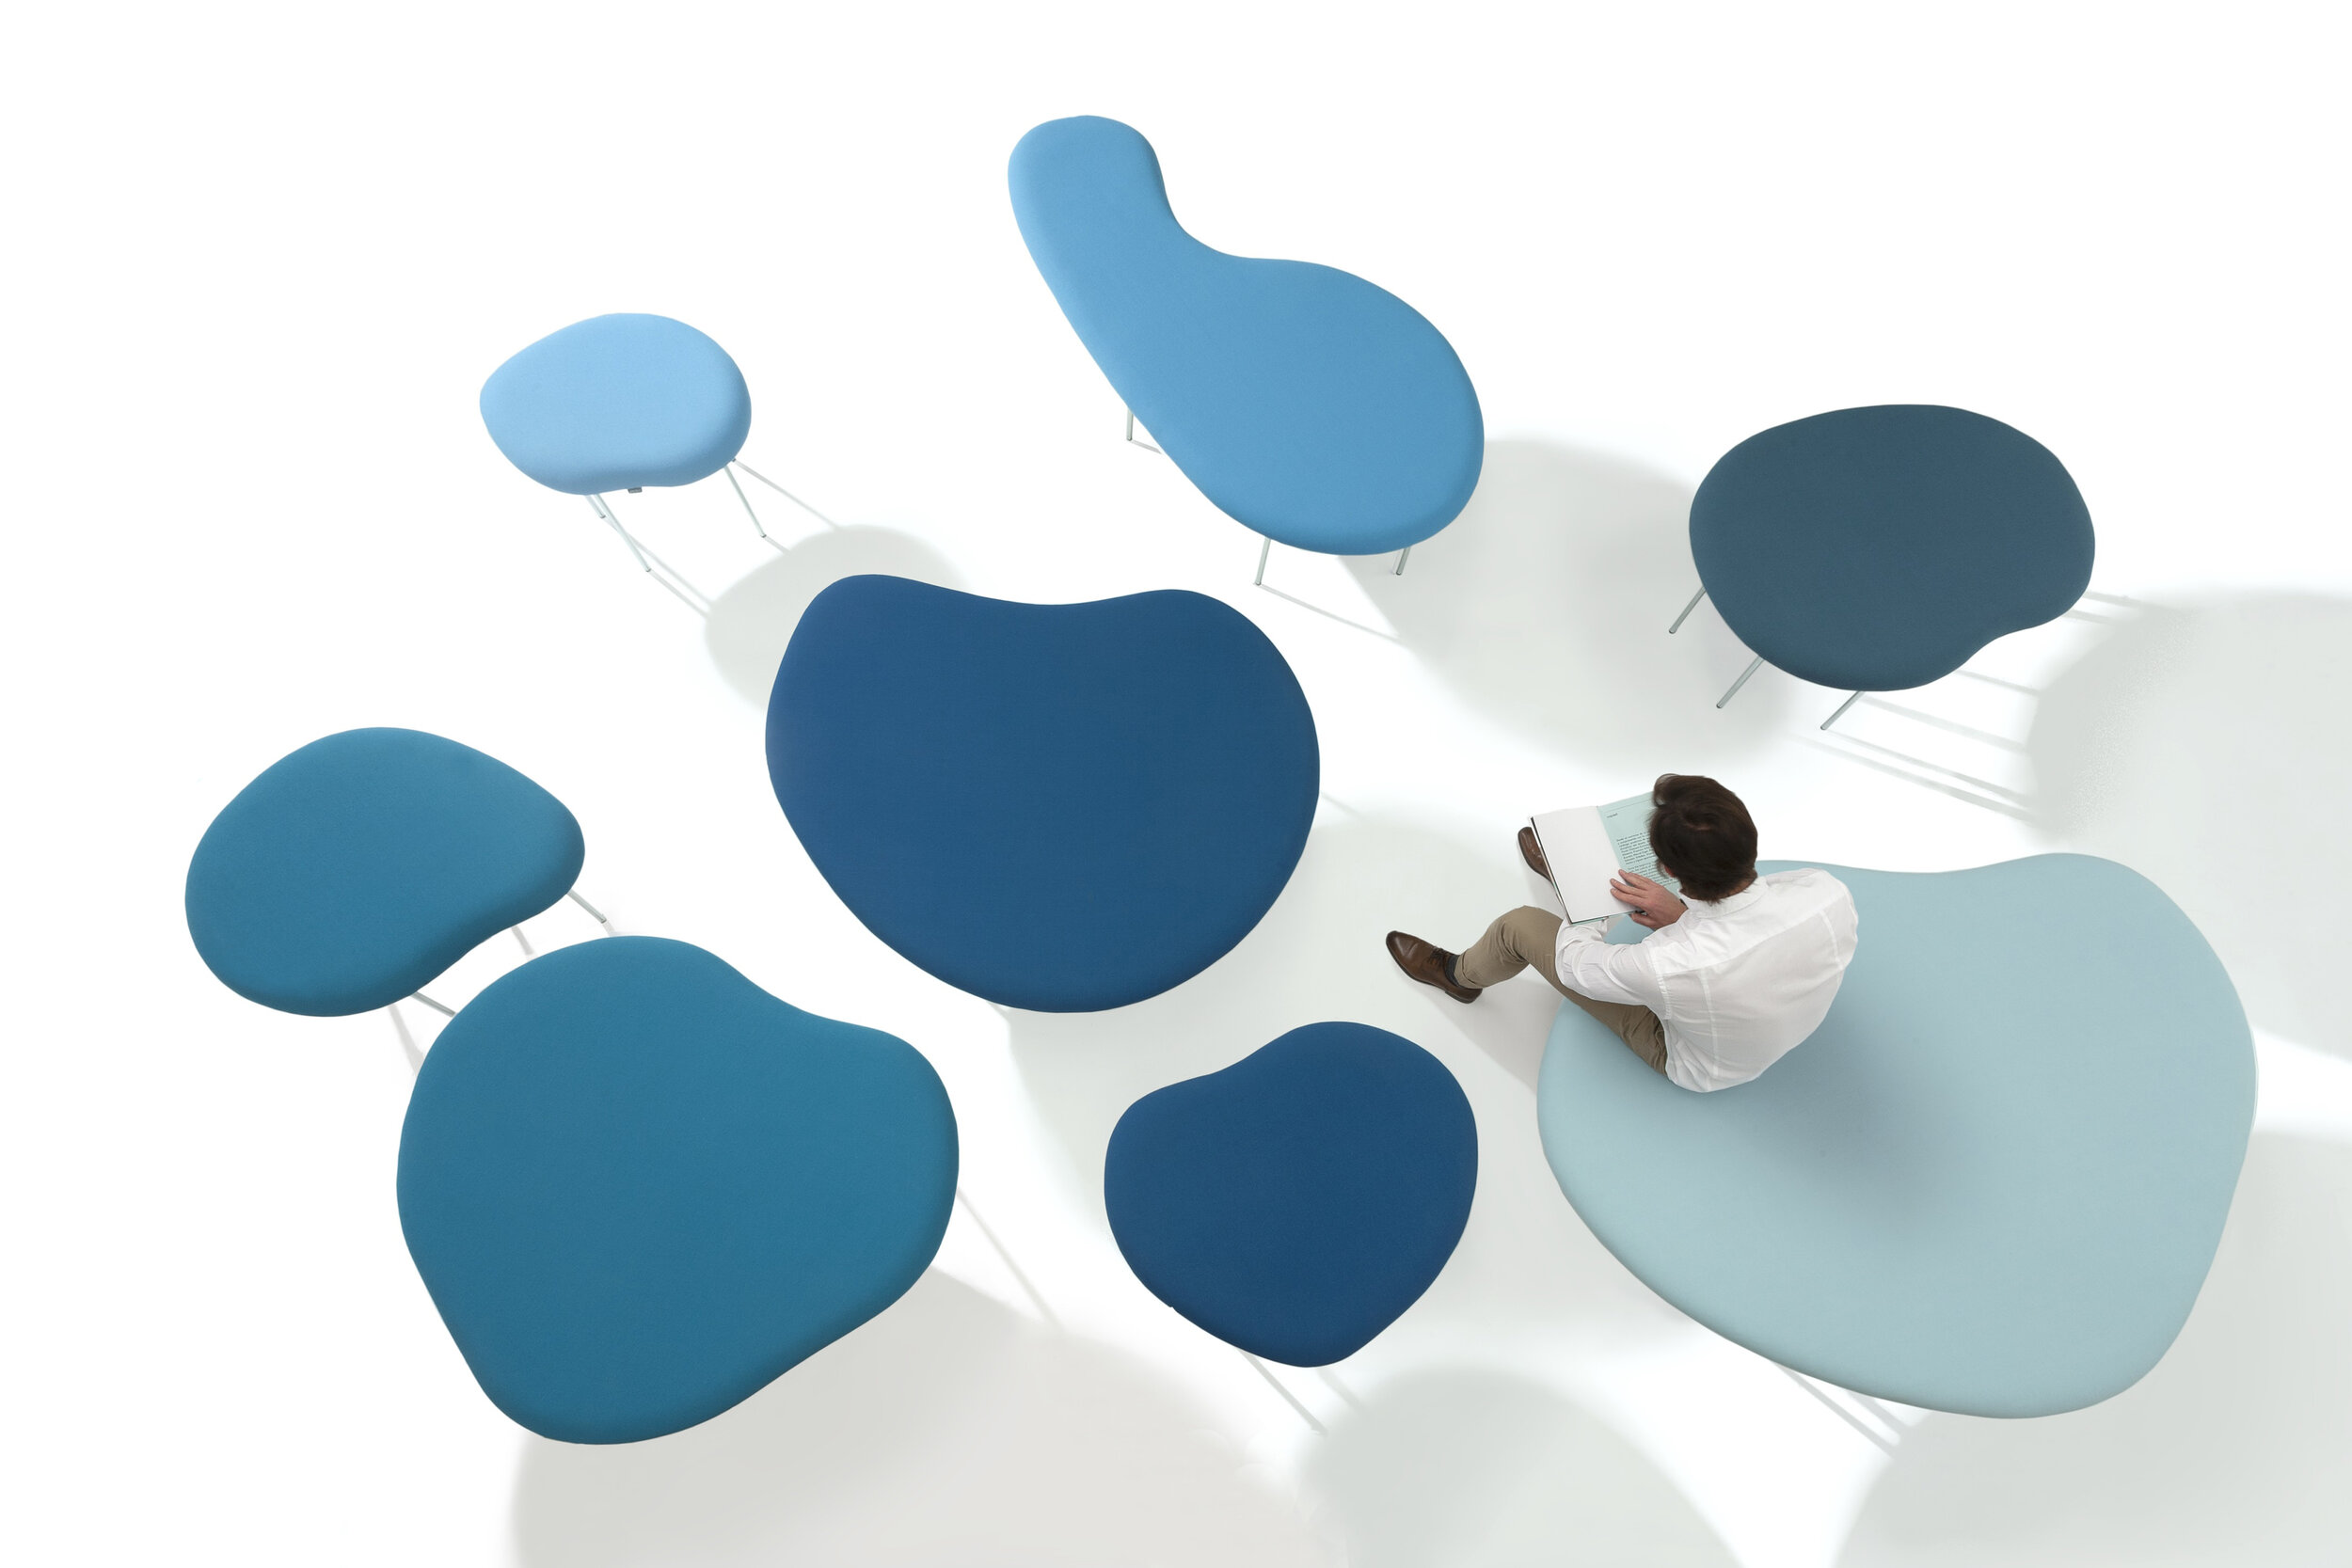 Droplets Upholstered Ottomans, Stools, or Benches,  starting at $422 List per piece